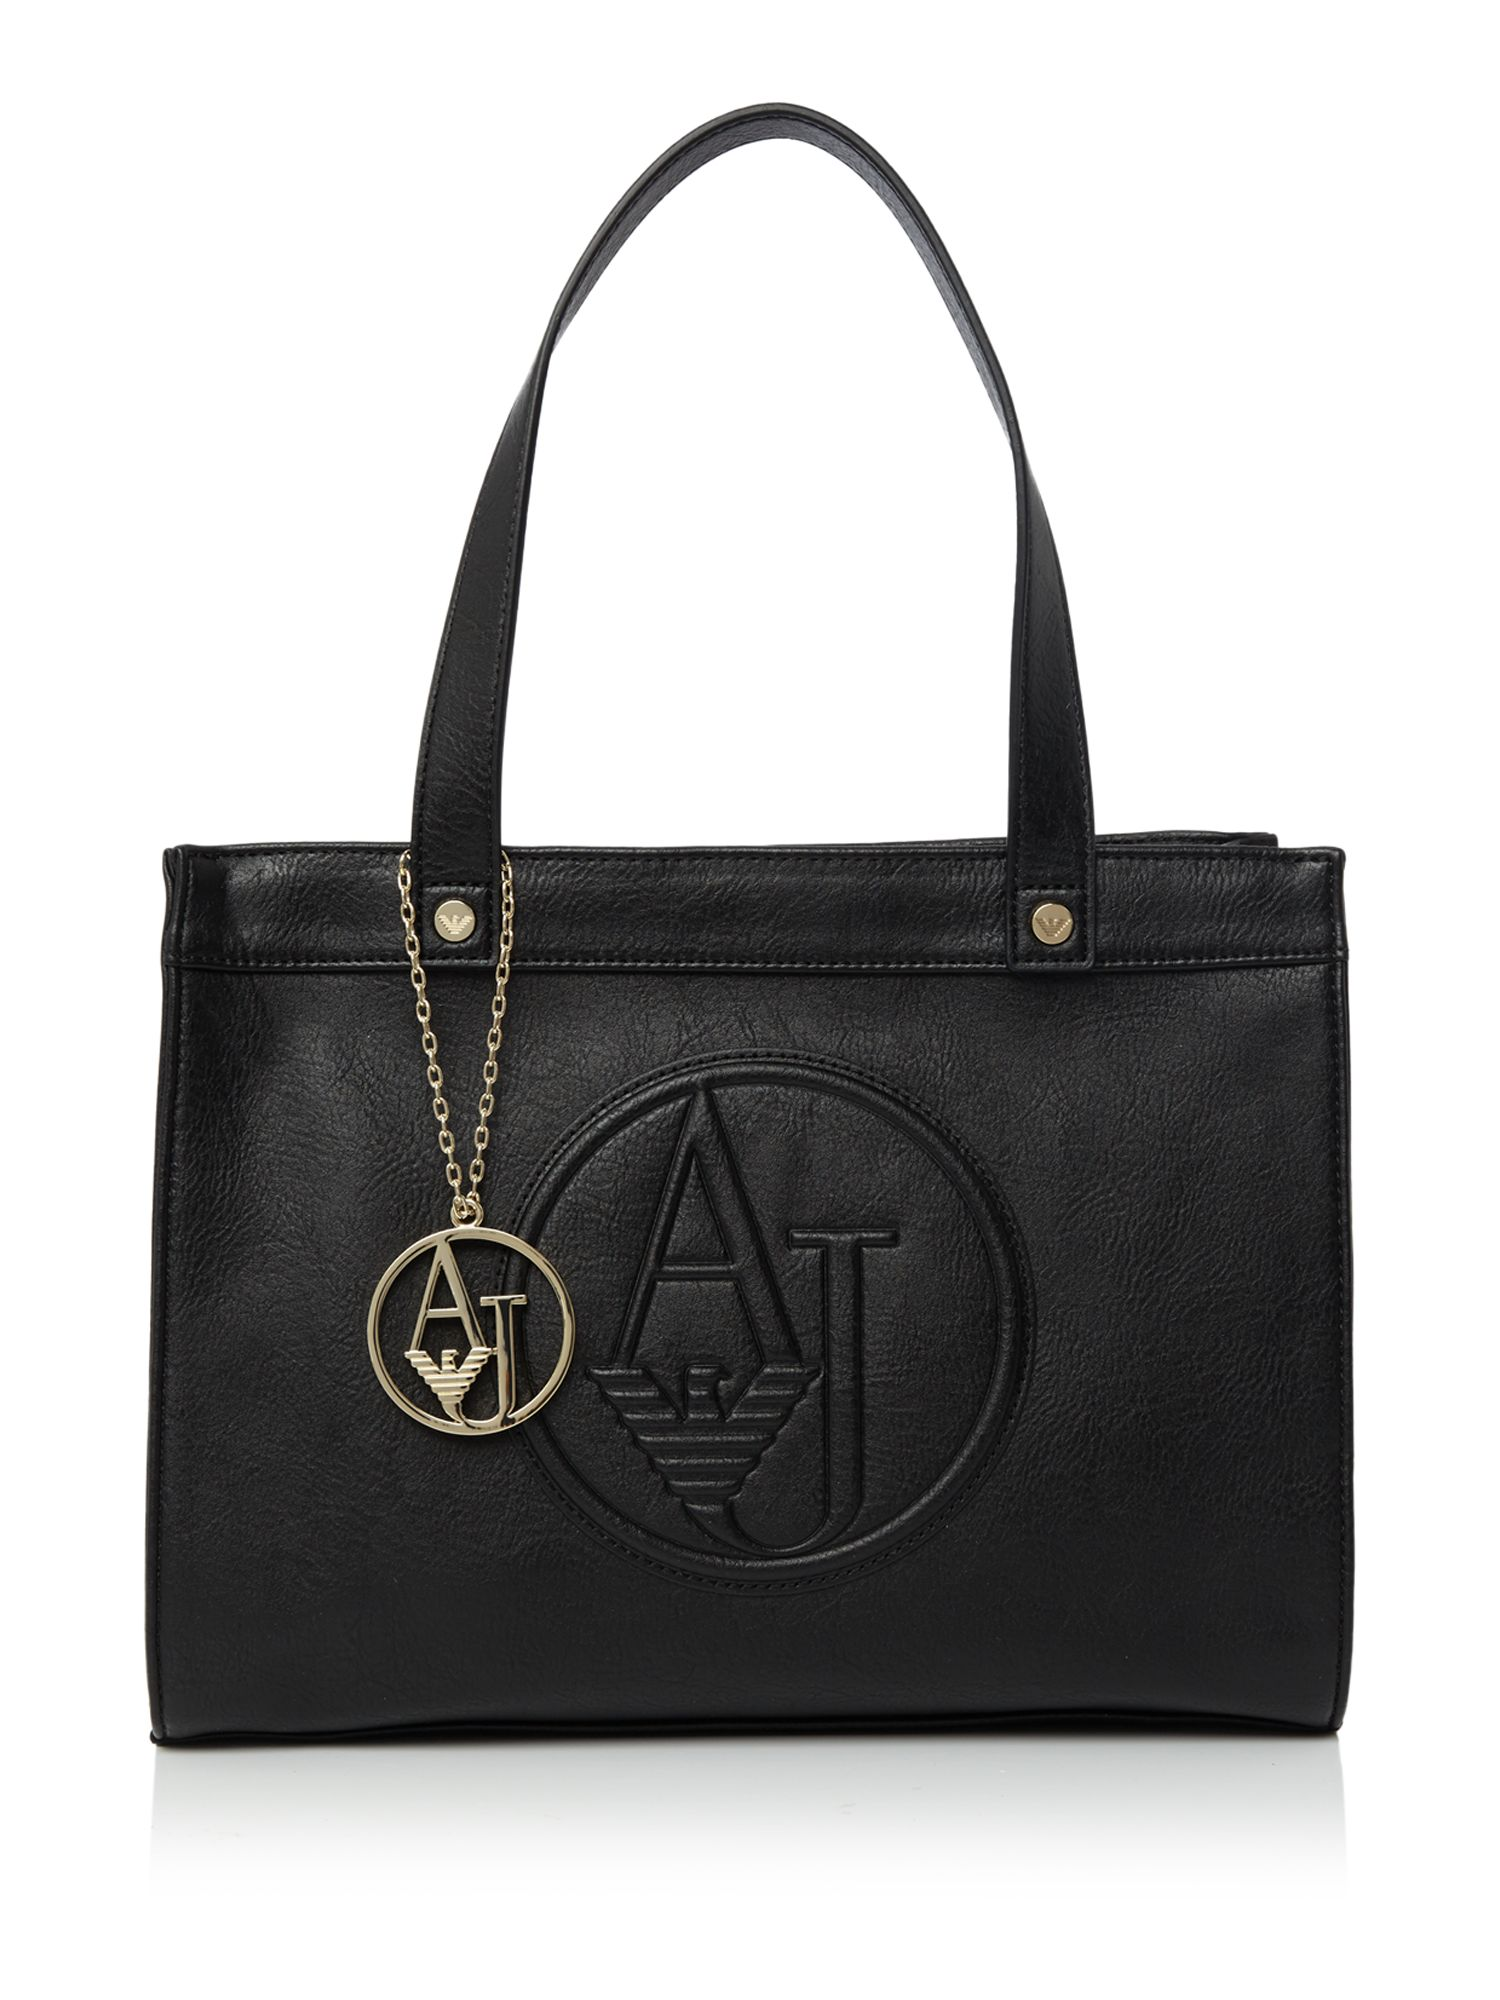 armani bags armani jeans eco leather black medium tote bag - house of fraser BDNZMSY